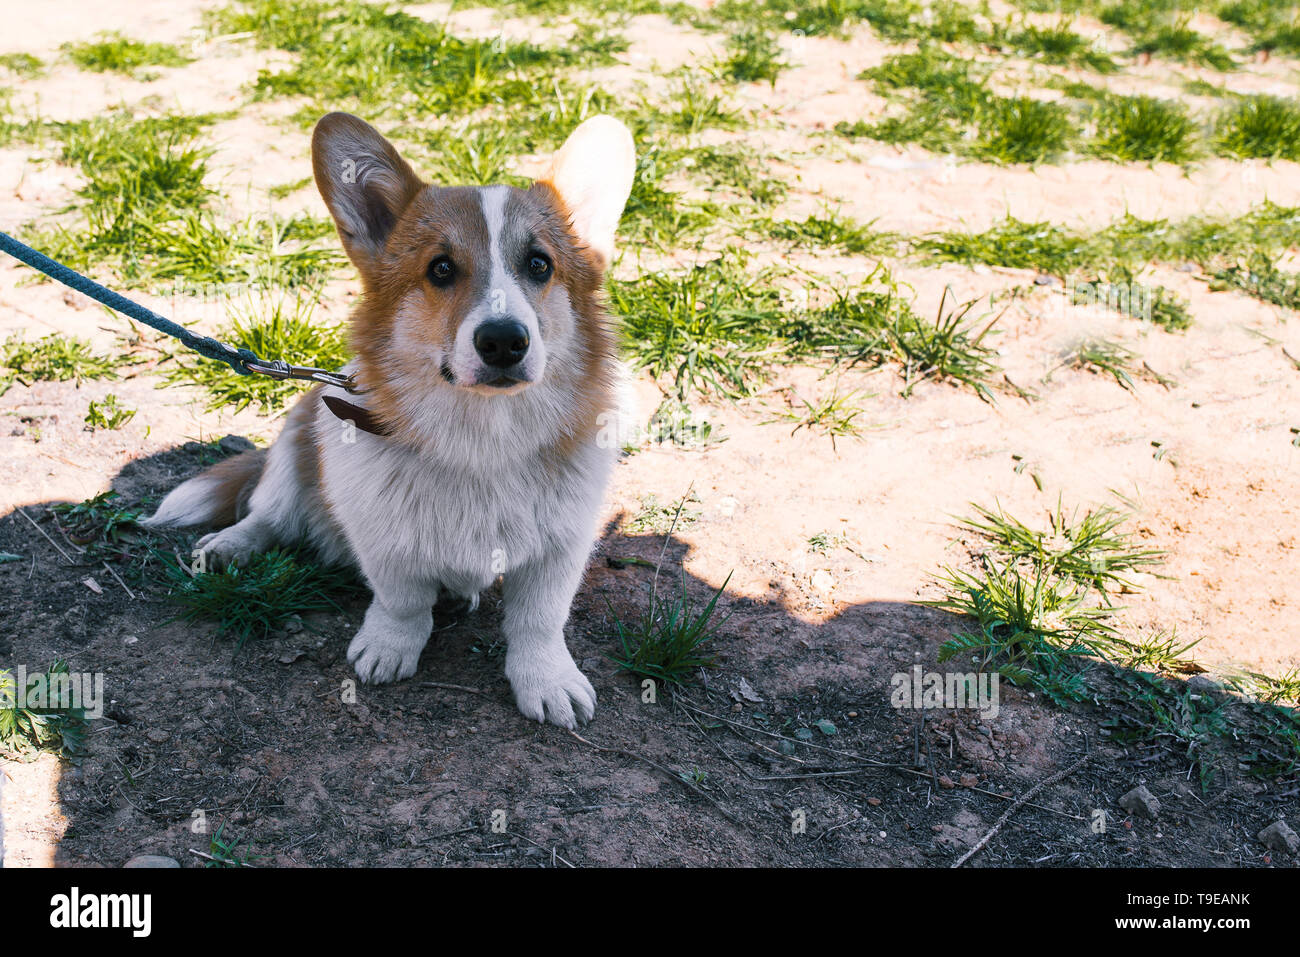 Photo of a dog corgi on the street. Portrait of a small dog. Welsh Corgi sits on the grass and looks into the camera - Stock Image